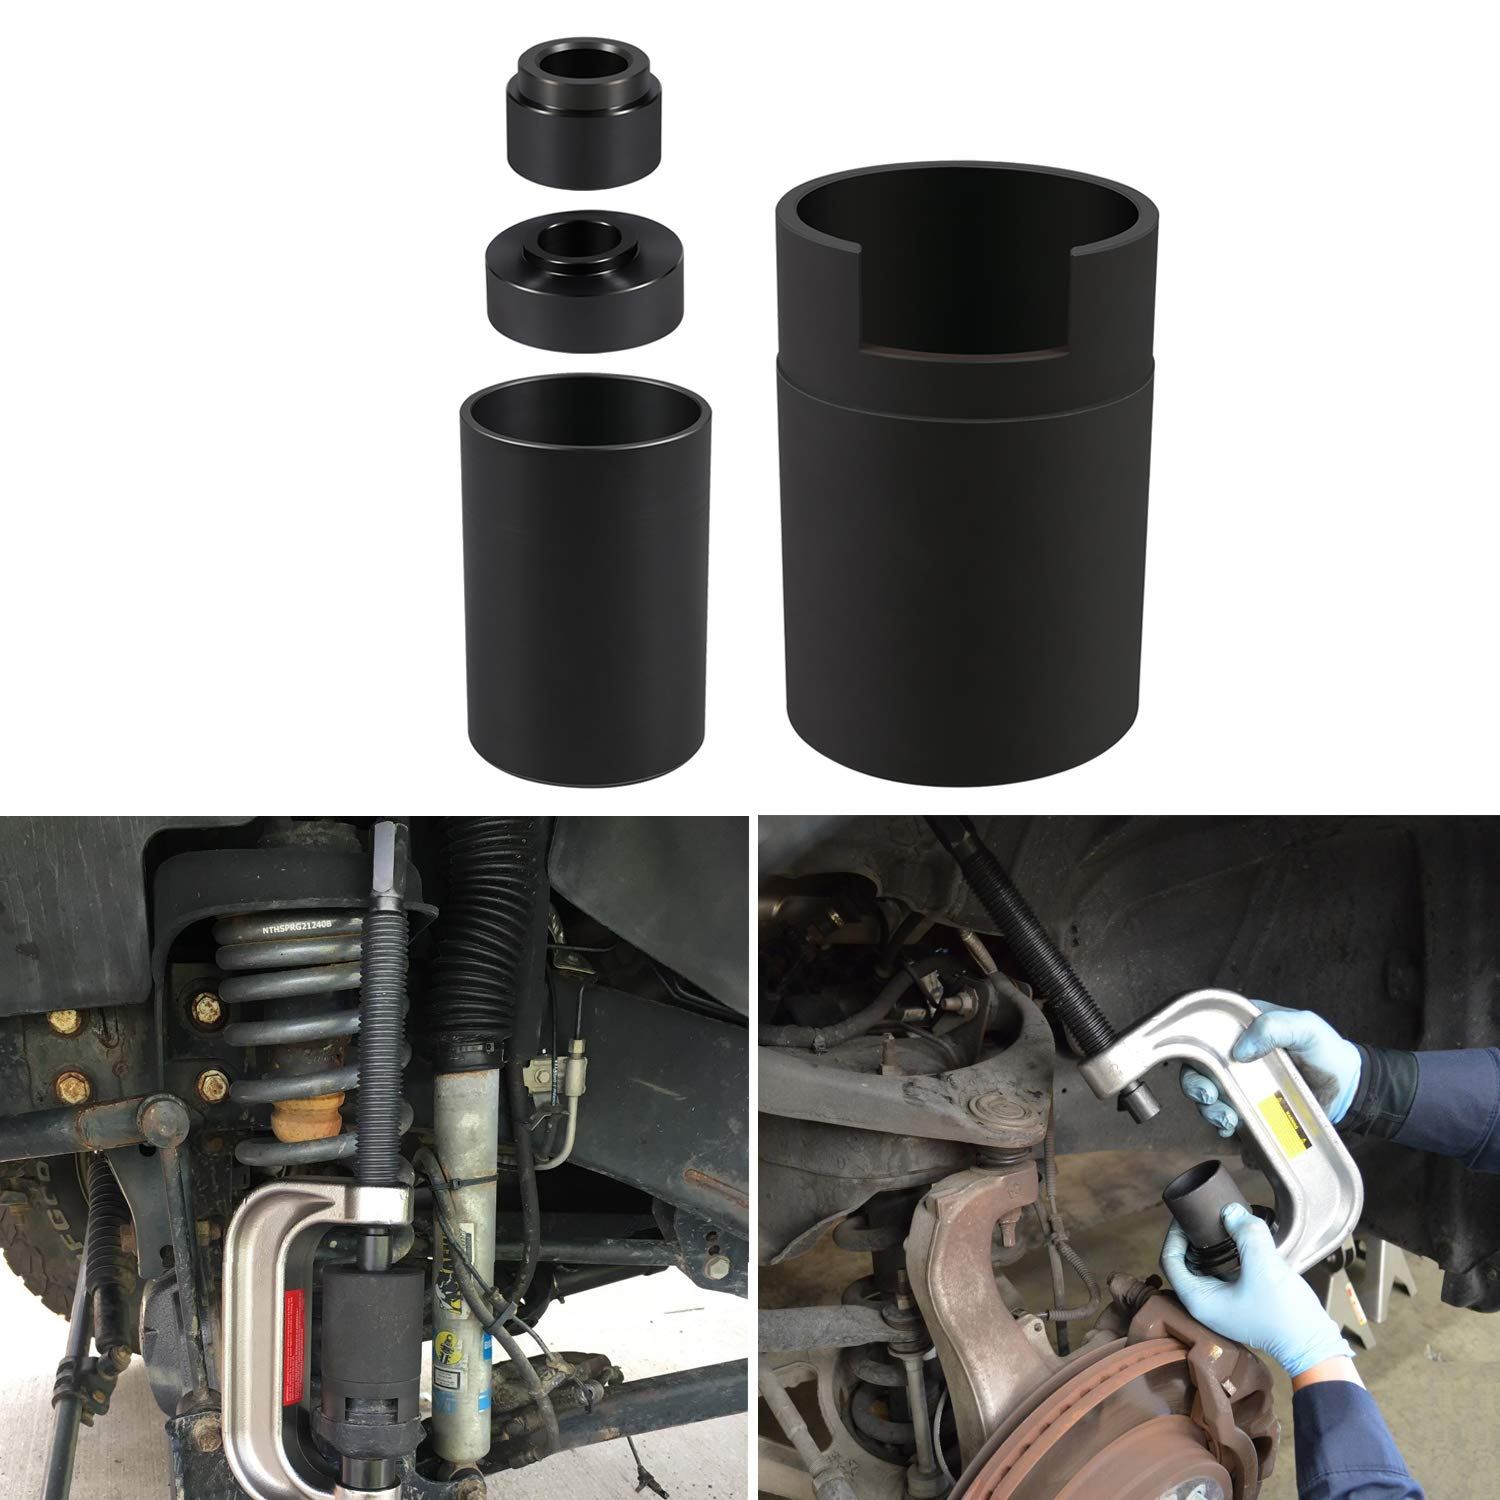 Ball Joint Service Adapter for Jeep/Dodge by Sunluway